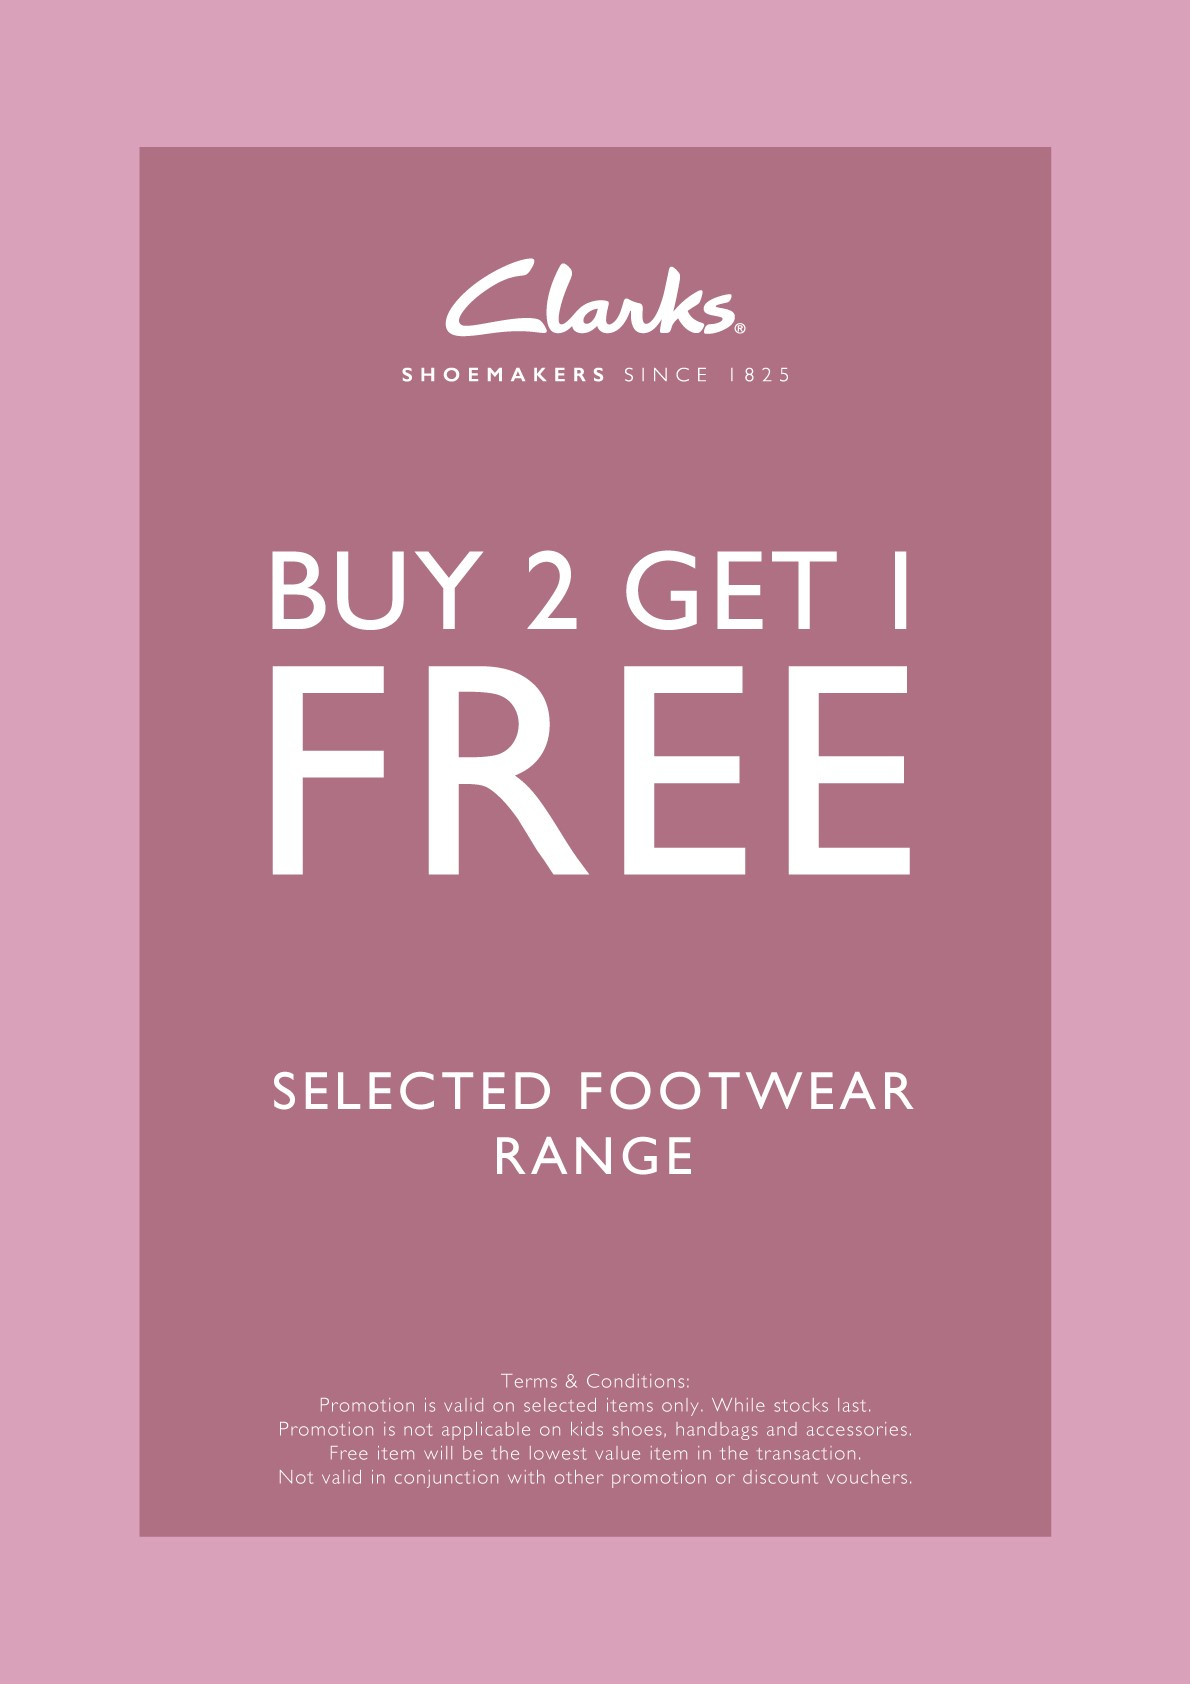 Clarks - Buy 2 Free 1 Promotion (27 Apr - 1 May)